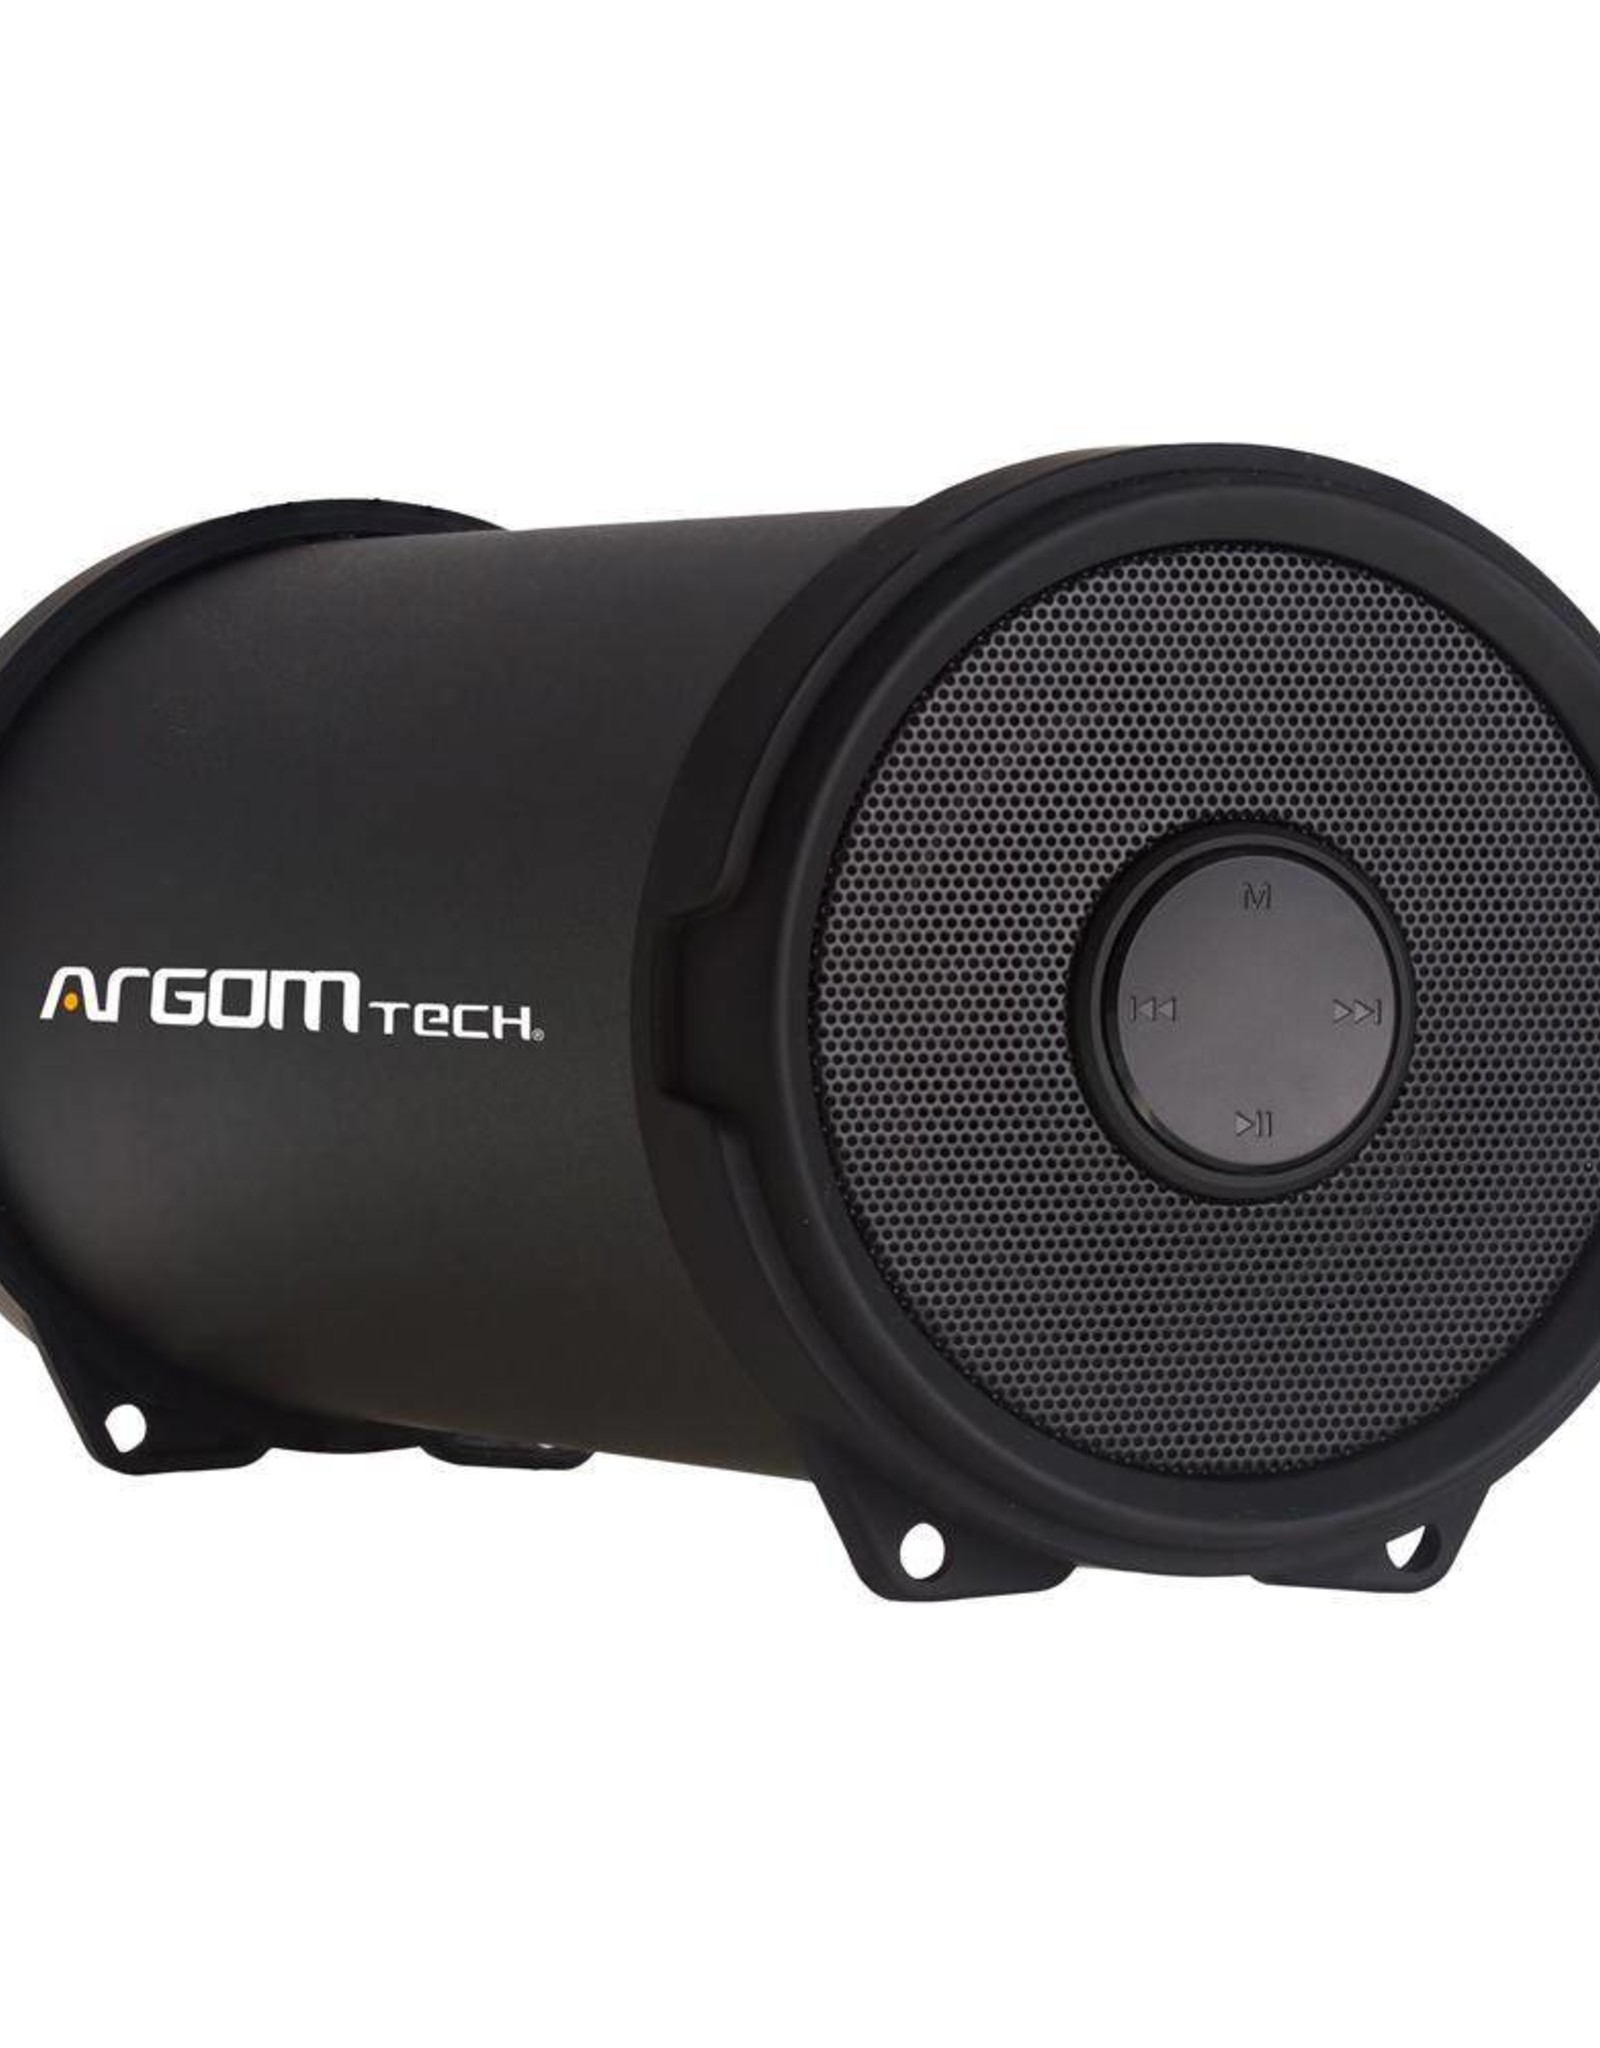 Argom Tech Bluetooth Bazooka Air Beats Argom Speaker